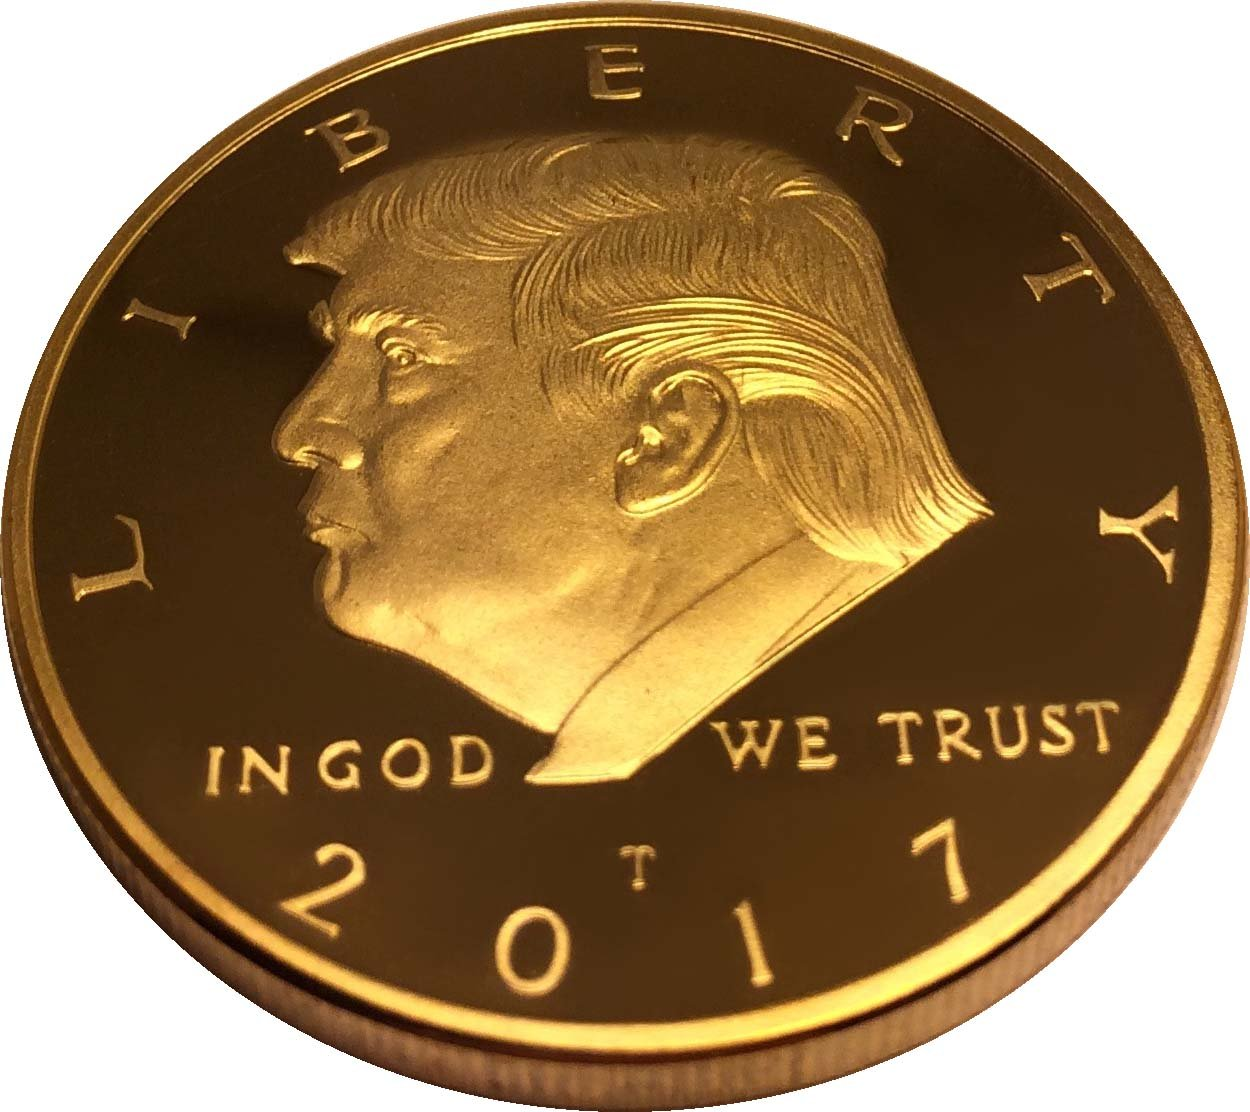 Donald Trump Gold Coin Gold Plated Collectable Coin And Case Included 45th President